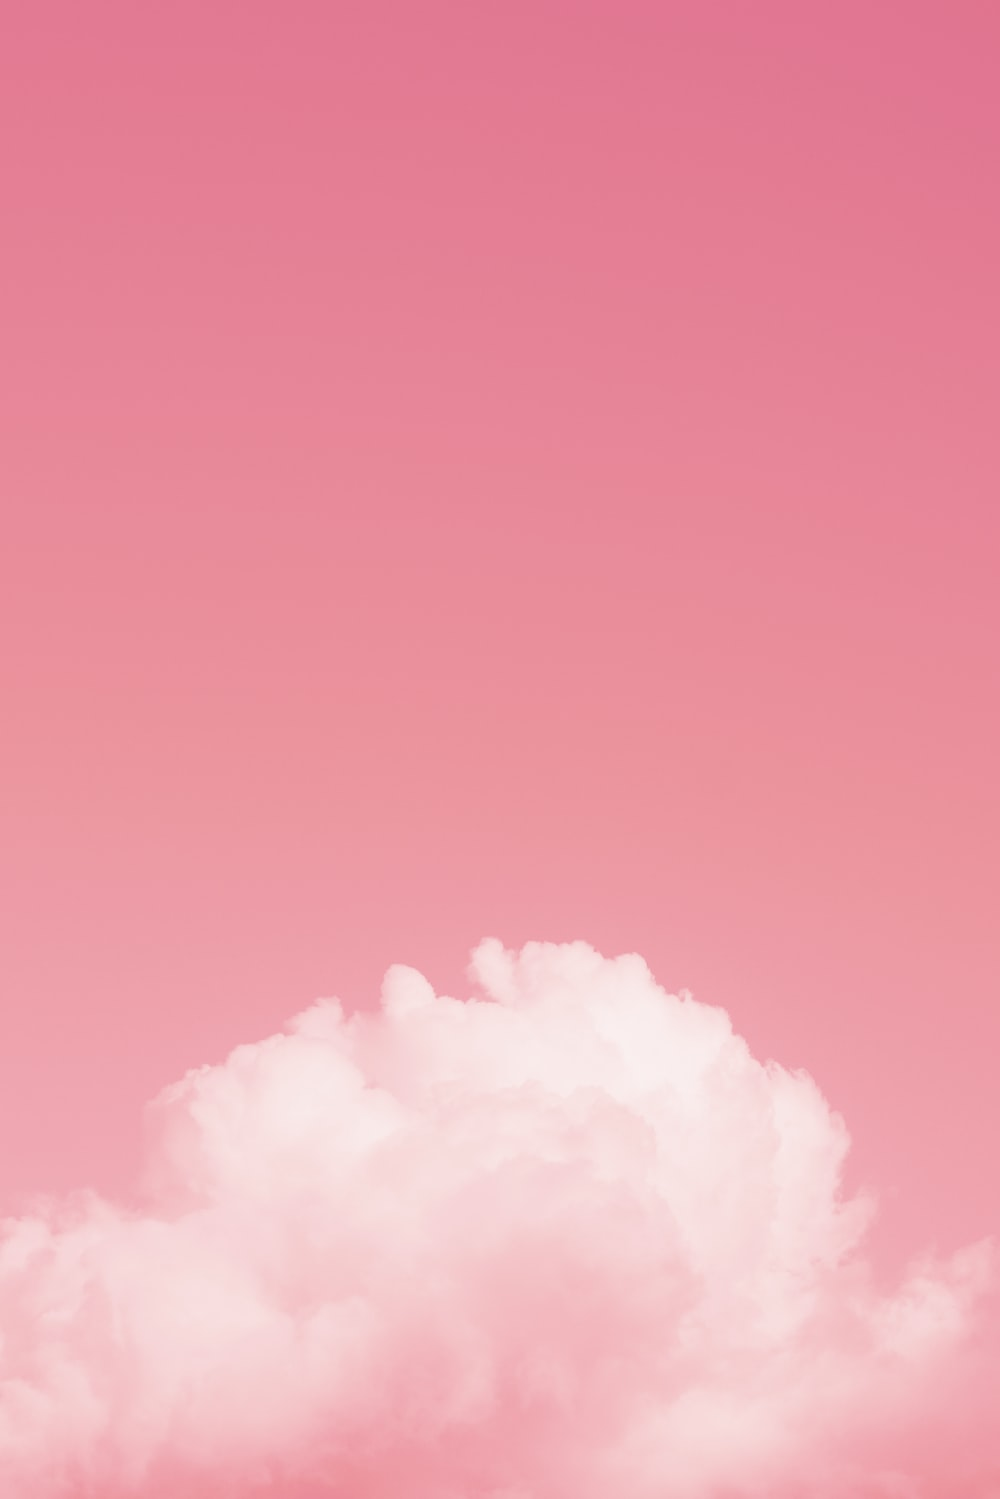 Pink Wallpapers HD Download [500 HQ] Unsplash 1000x1499